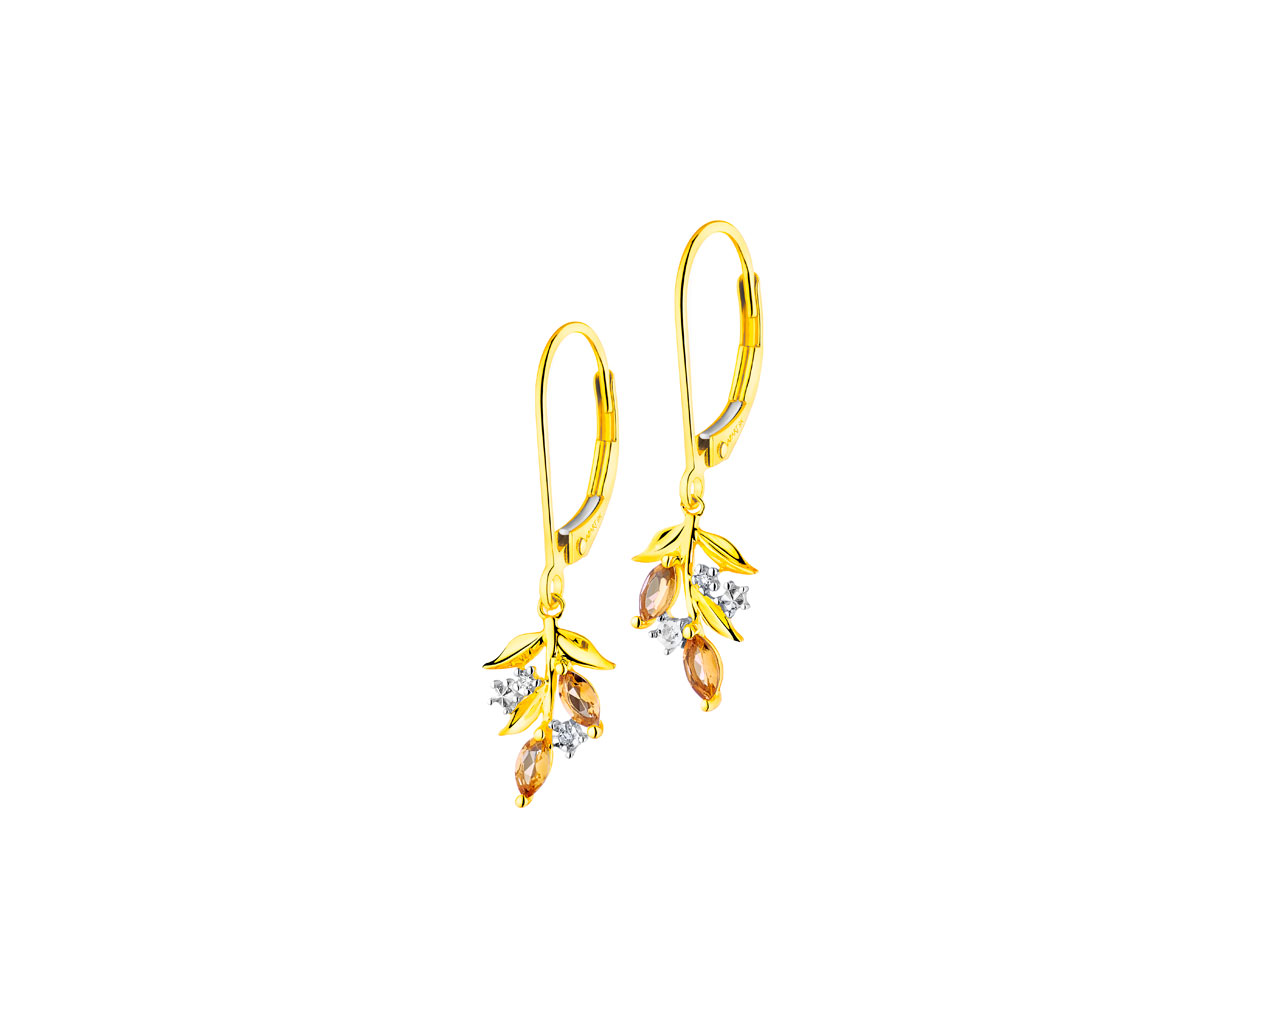 9 K Rhodium-Plated Yellow Gold Earrings with Diamonds